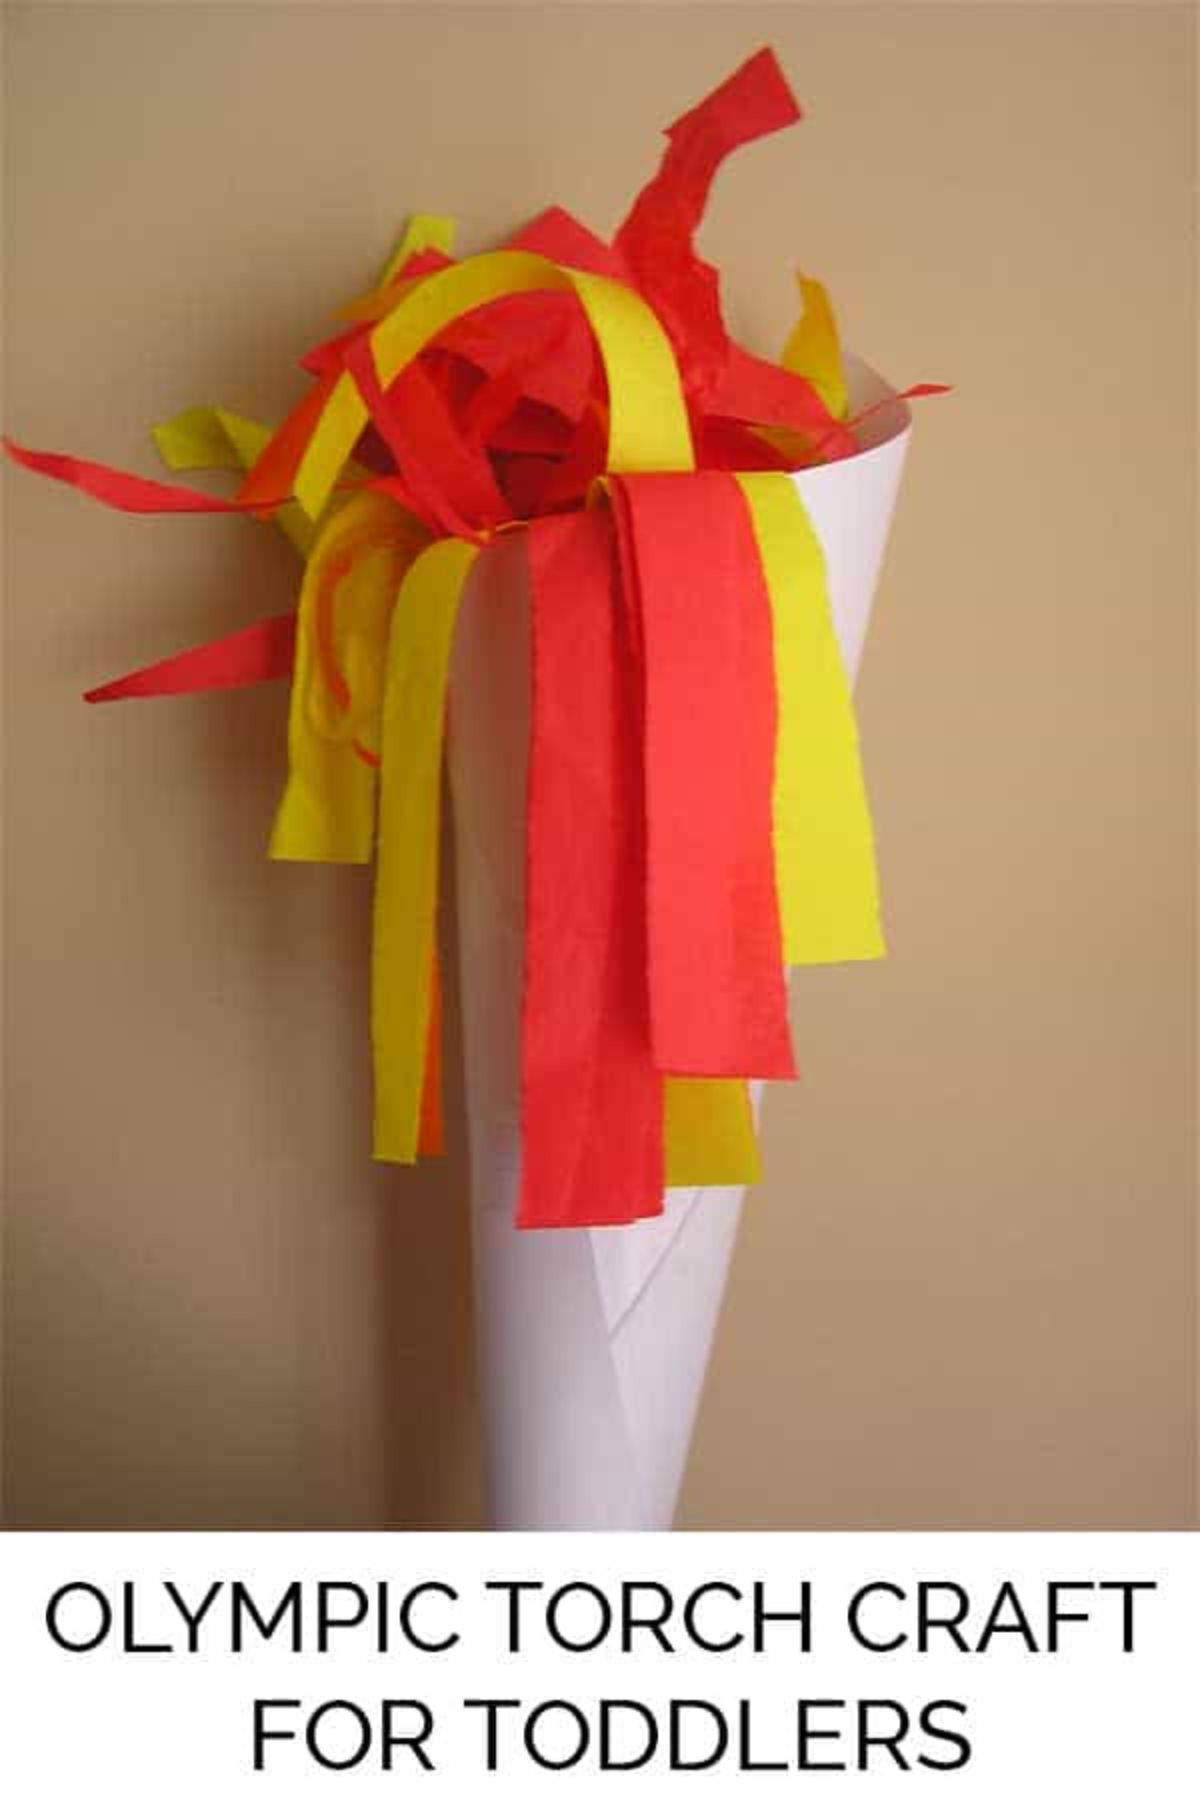 a torch made of a cone of white paper, with red and yellow tissue paper as the flames